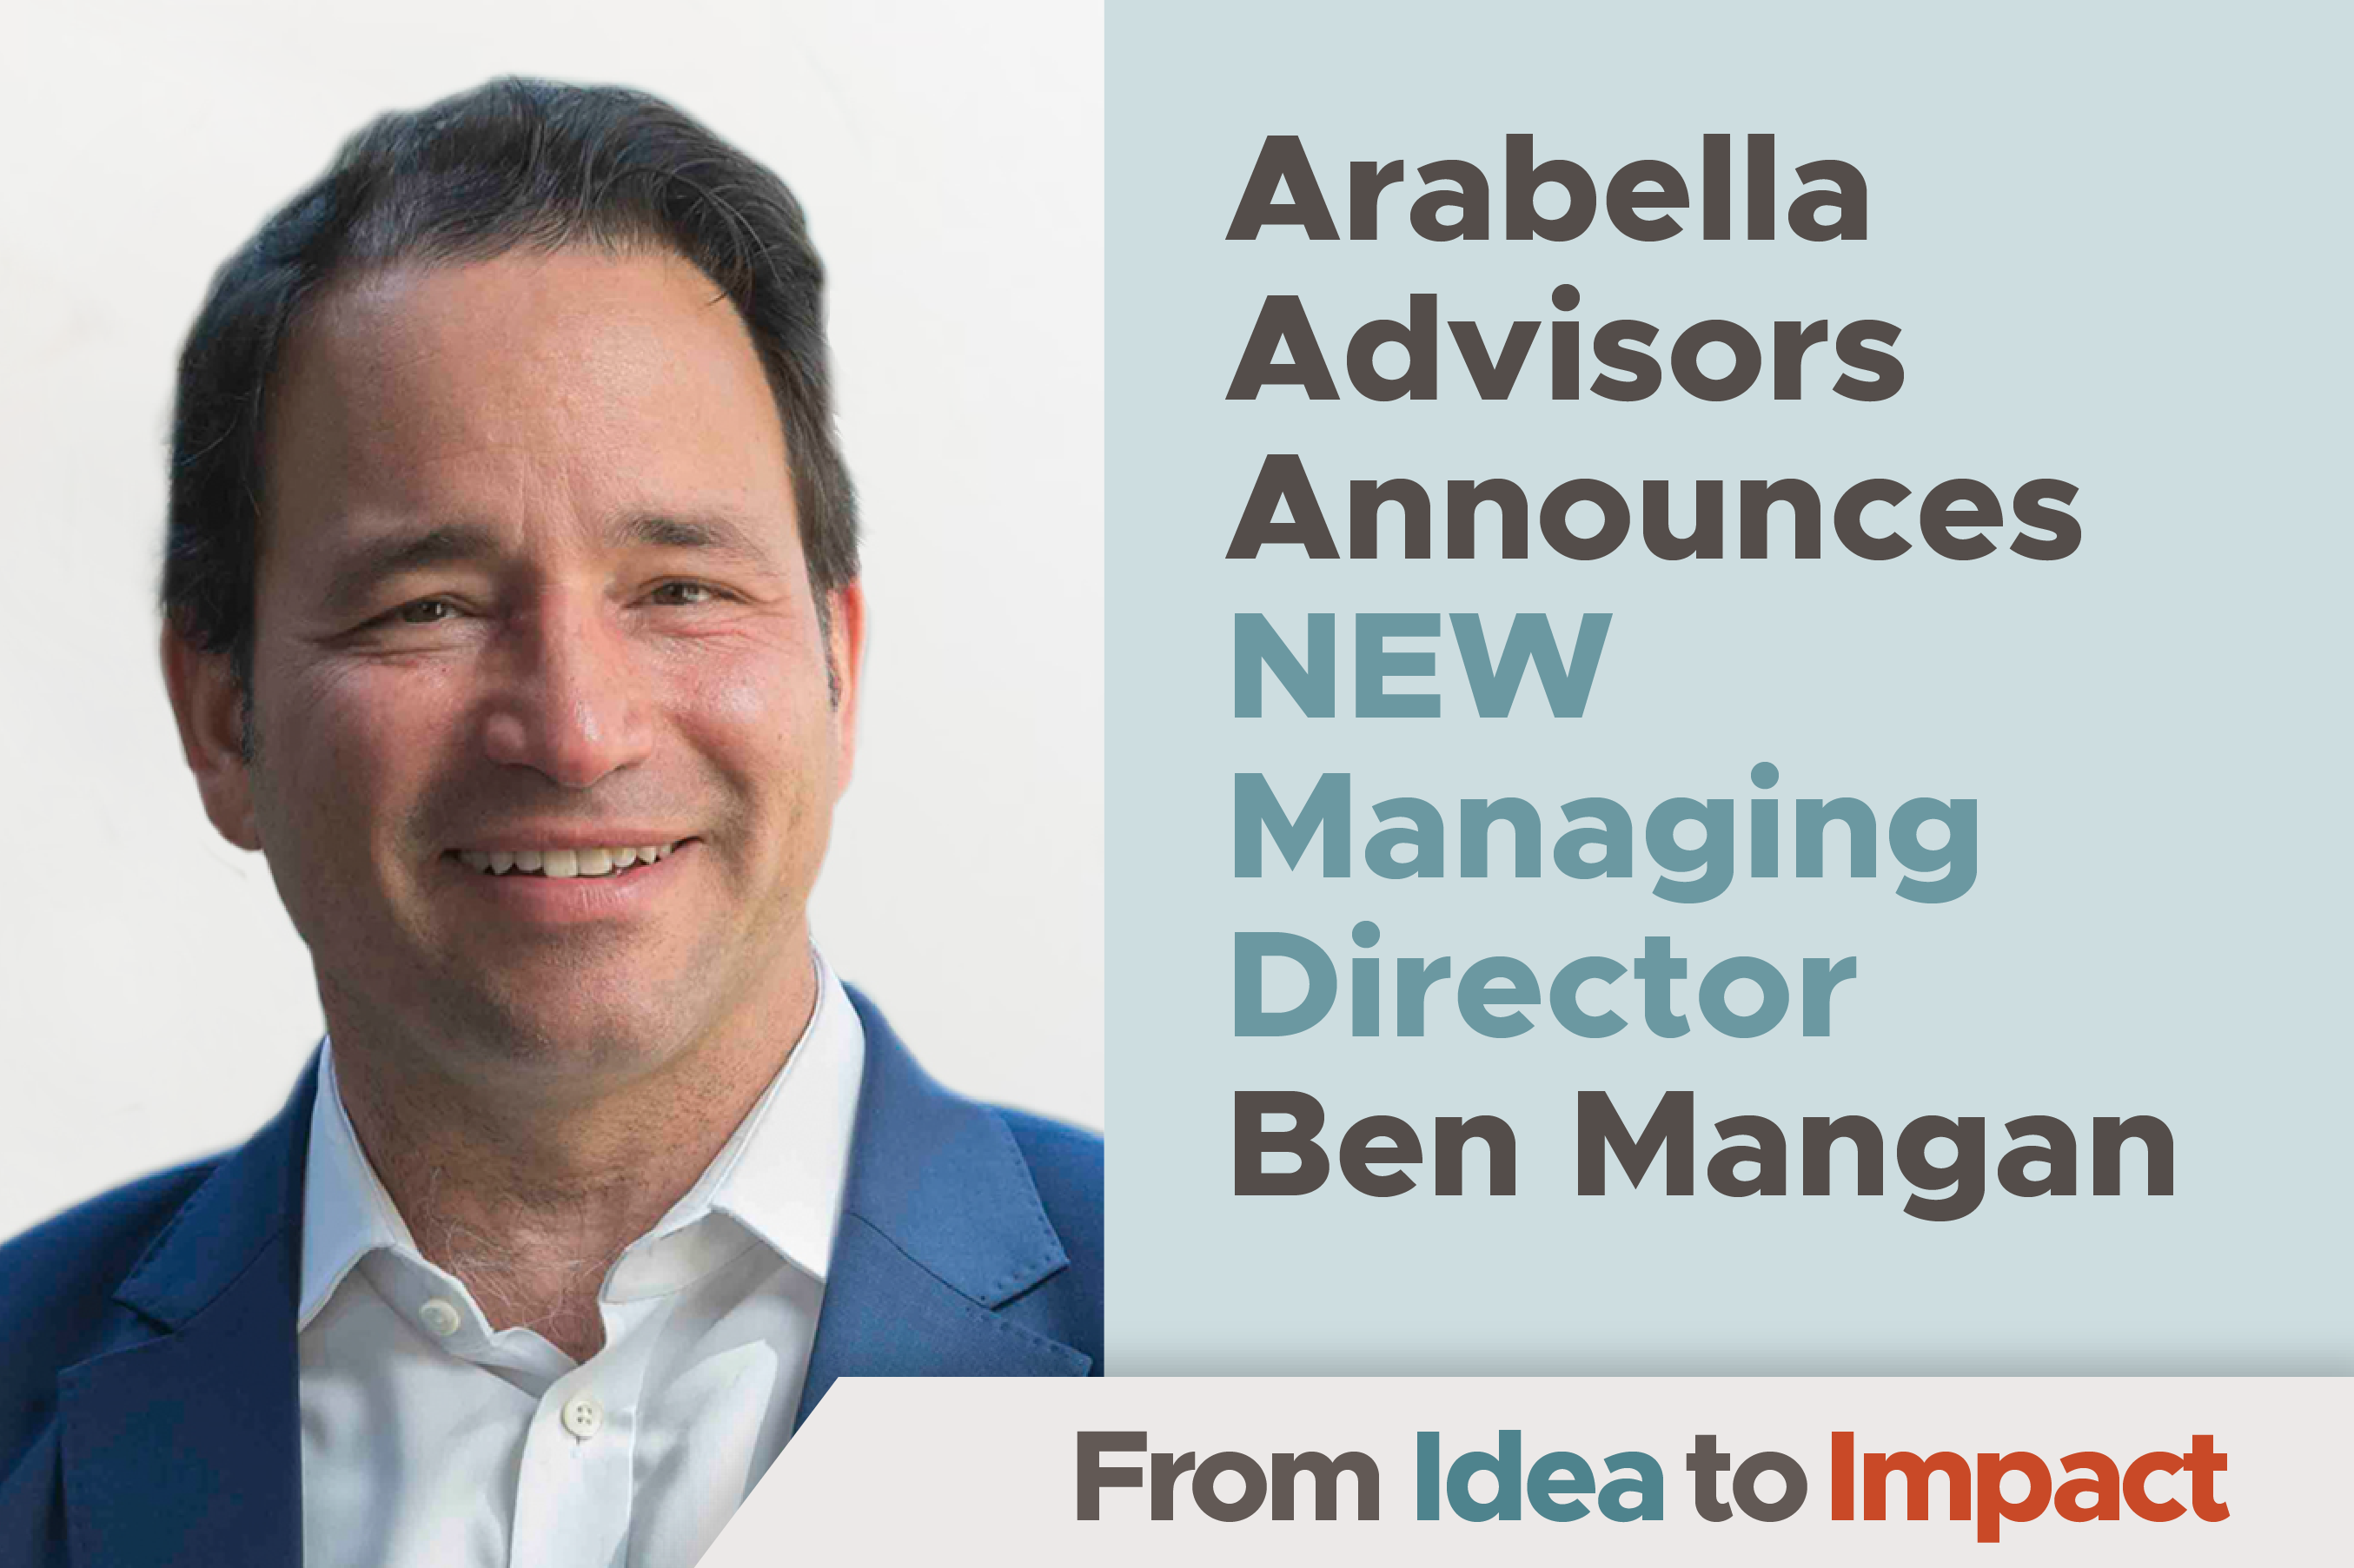 Ben Mangan joins Arabella Advisors as New Managing Director in San Francisco